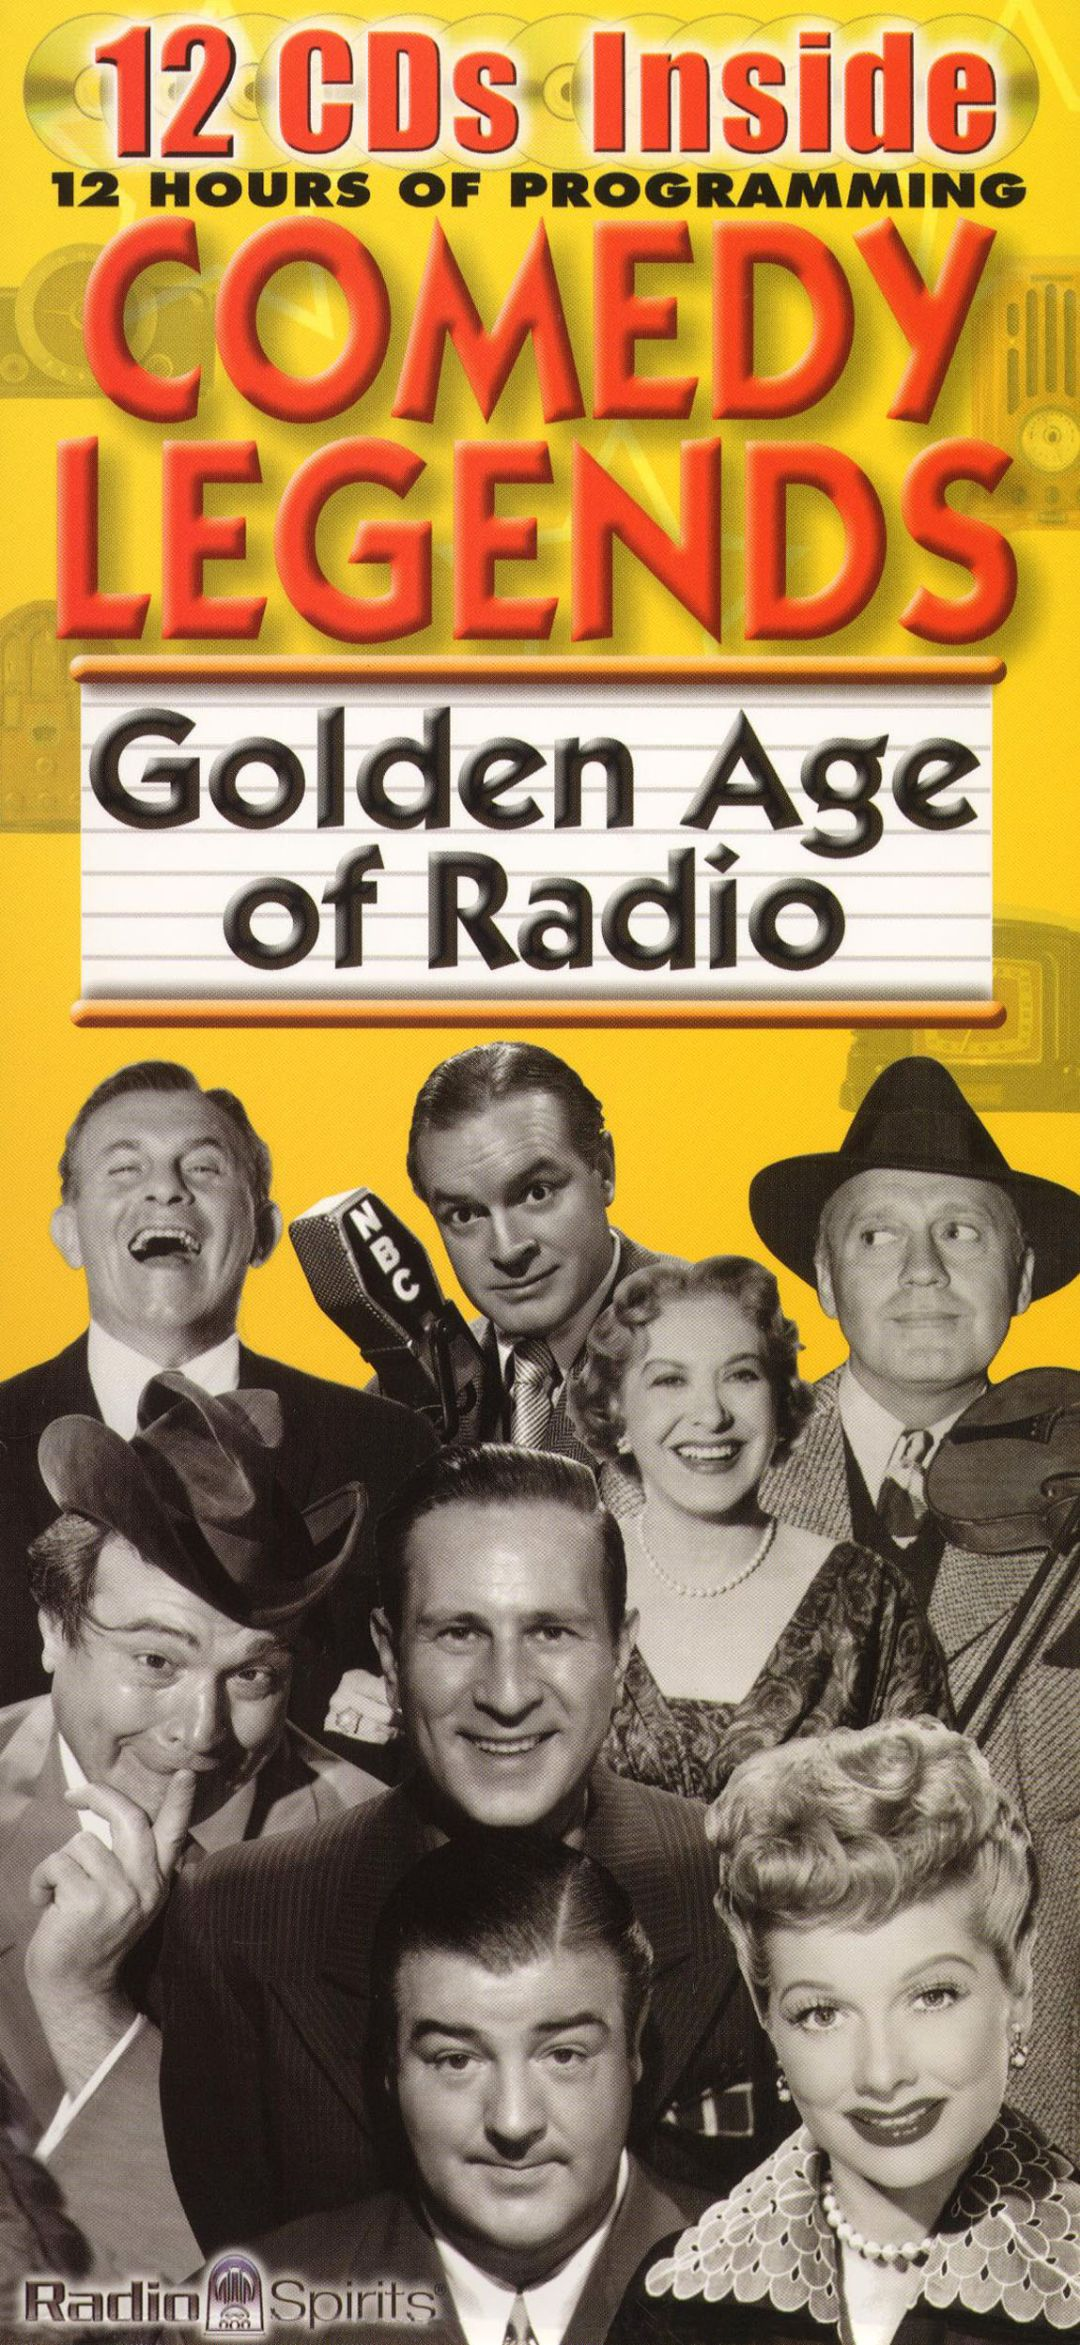 Golden Age of Radio: Comedy Legends